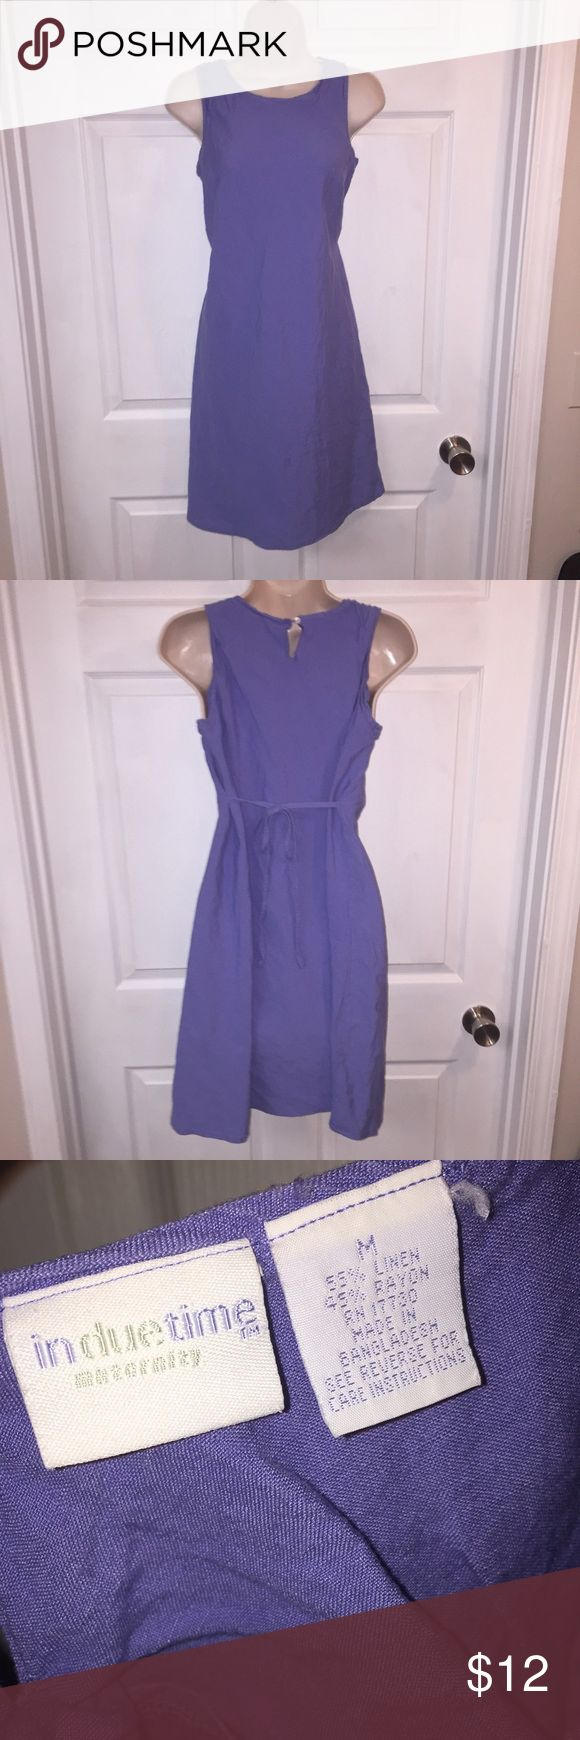 Light purple maternity dress Sleeveless maternity dress with tie back for a better fit. Excellent condition in due time Dresses